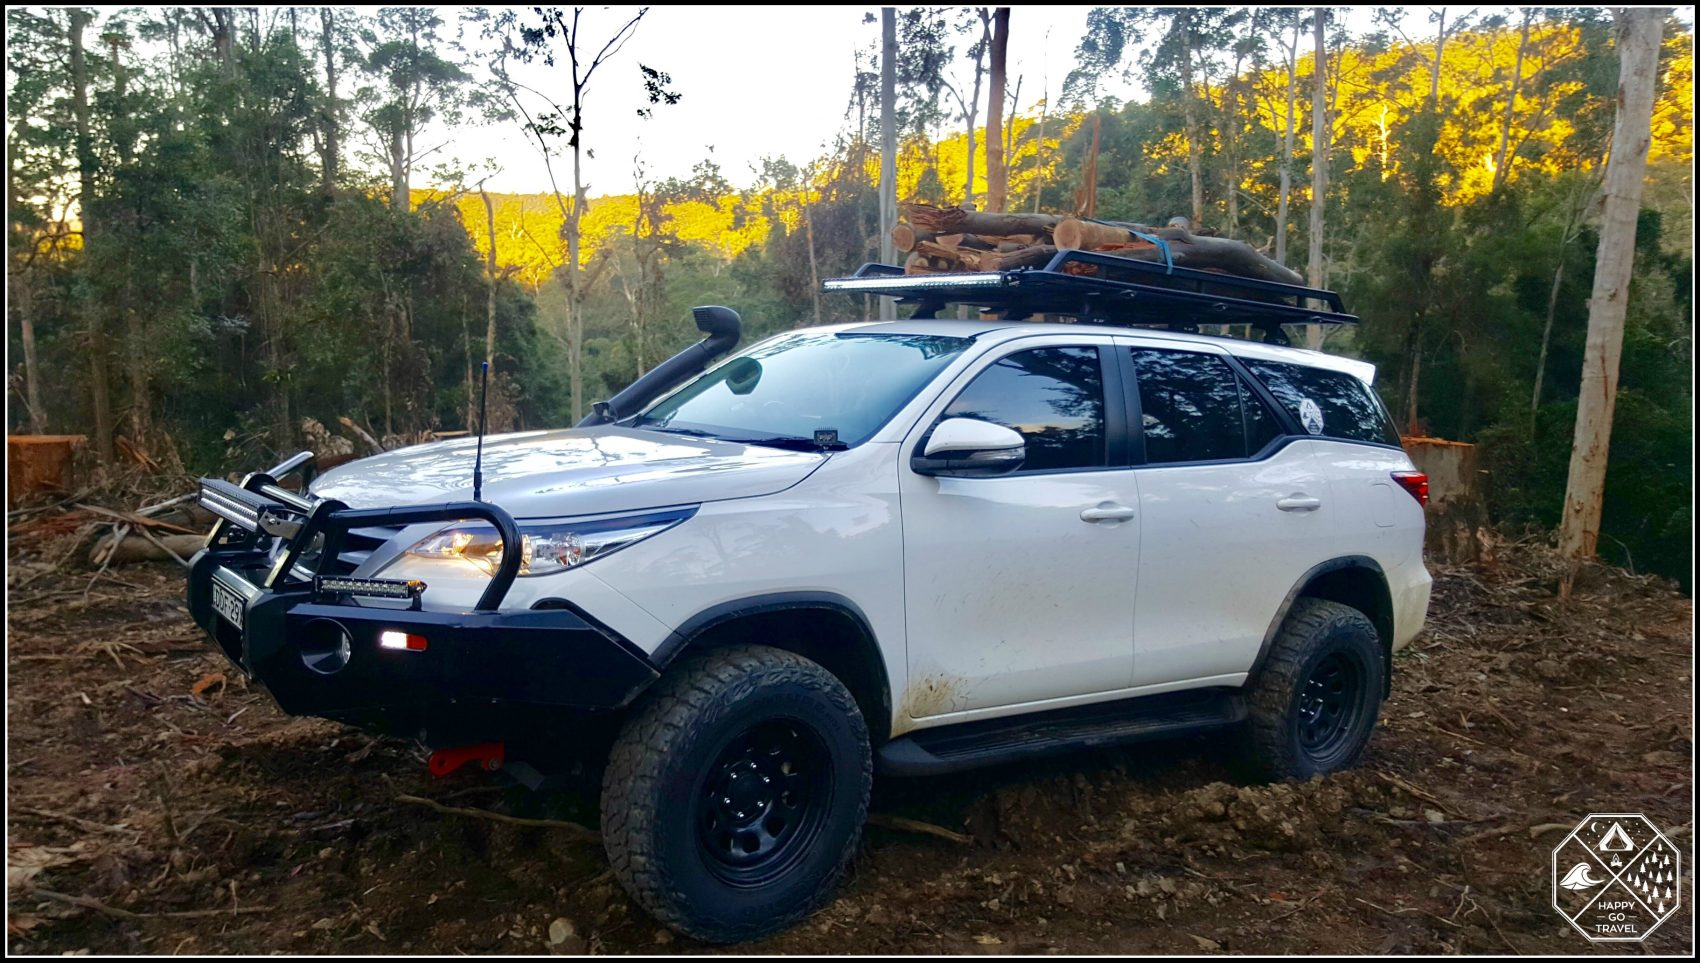 Rola Titan Tray on a Toyota Fortuner. Loaded with fire wood